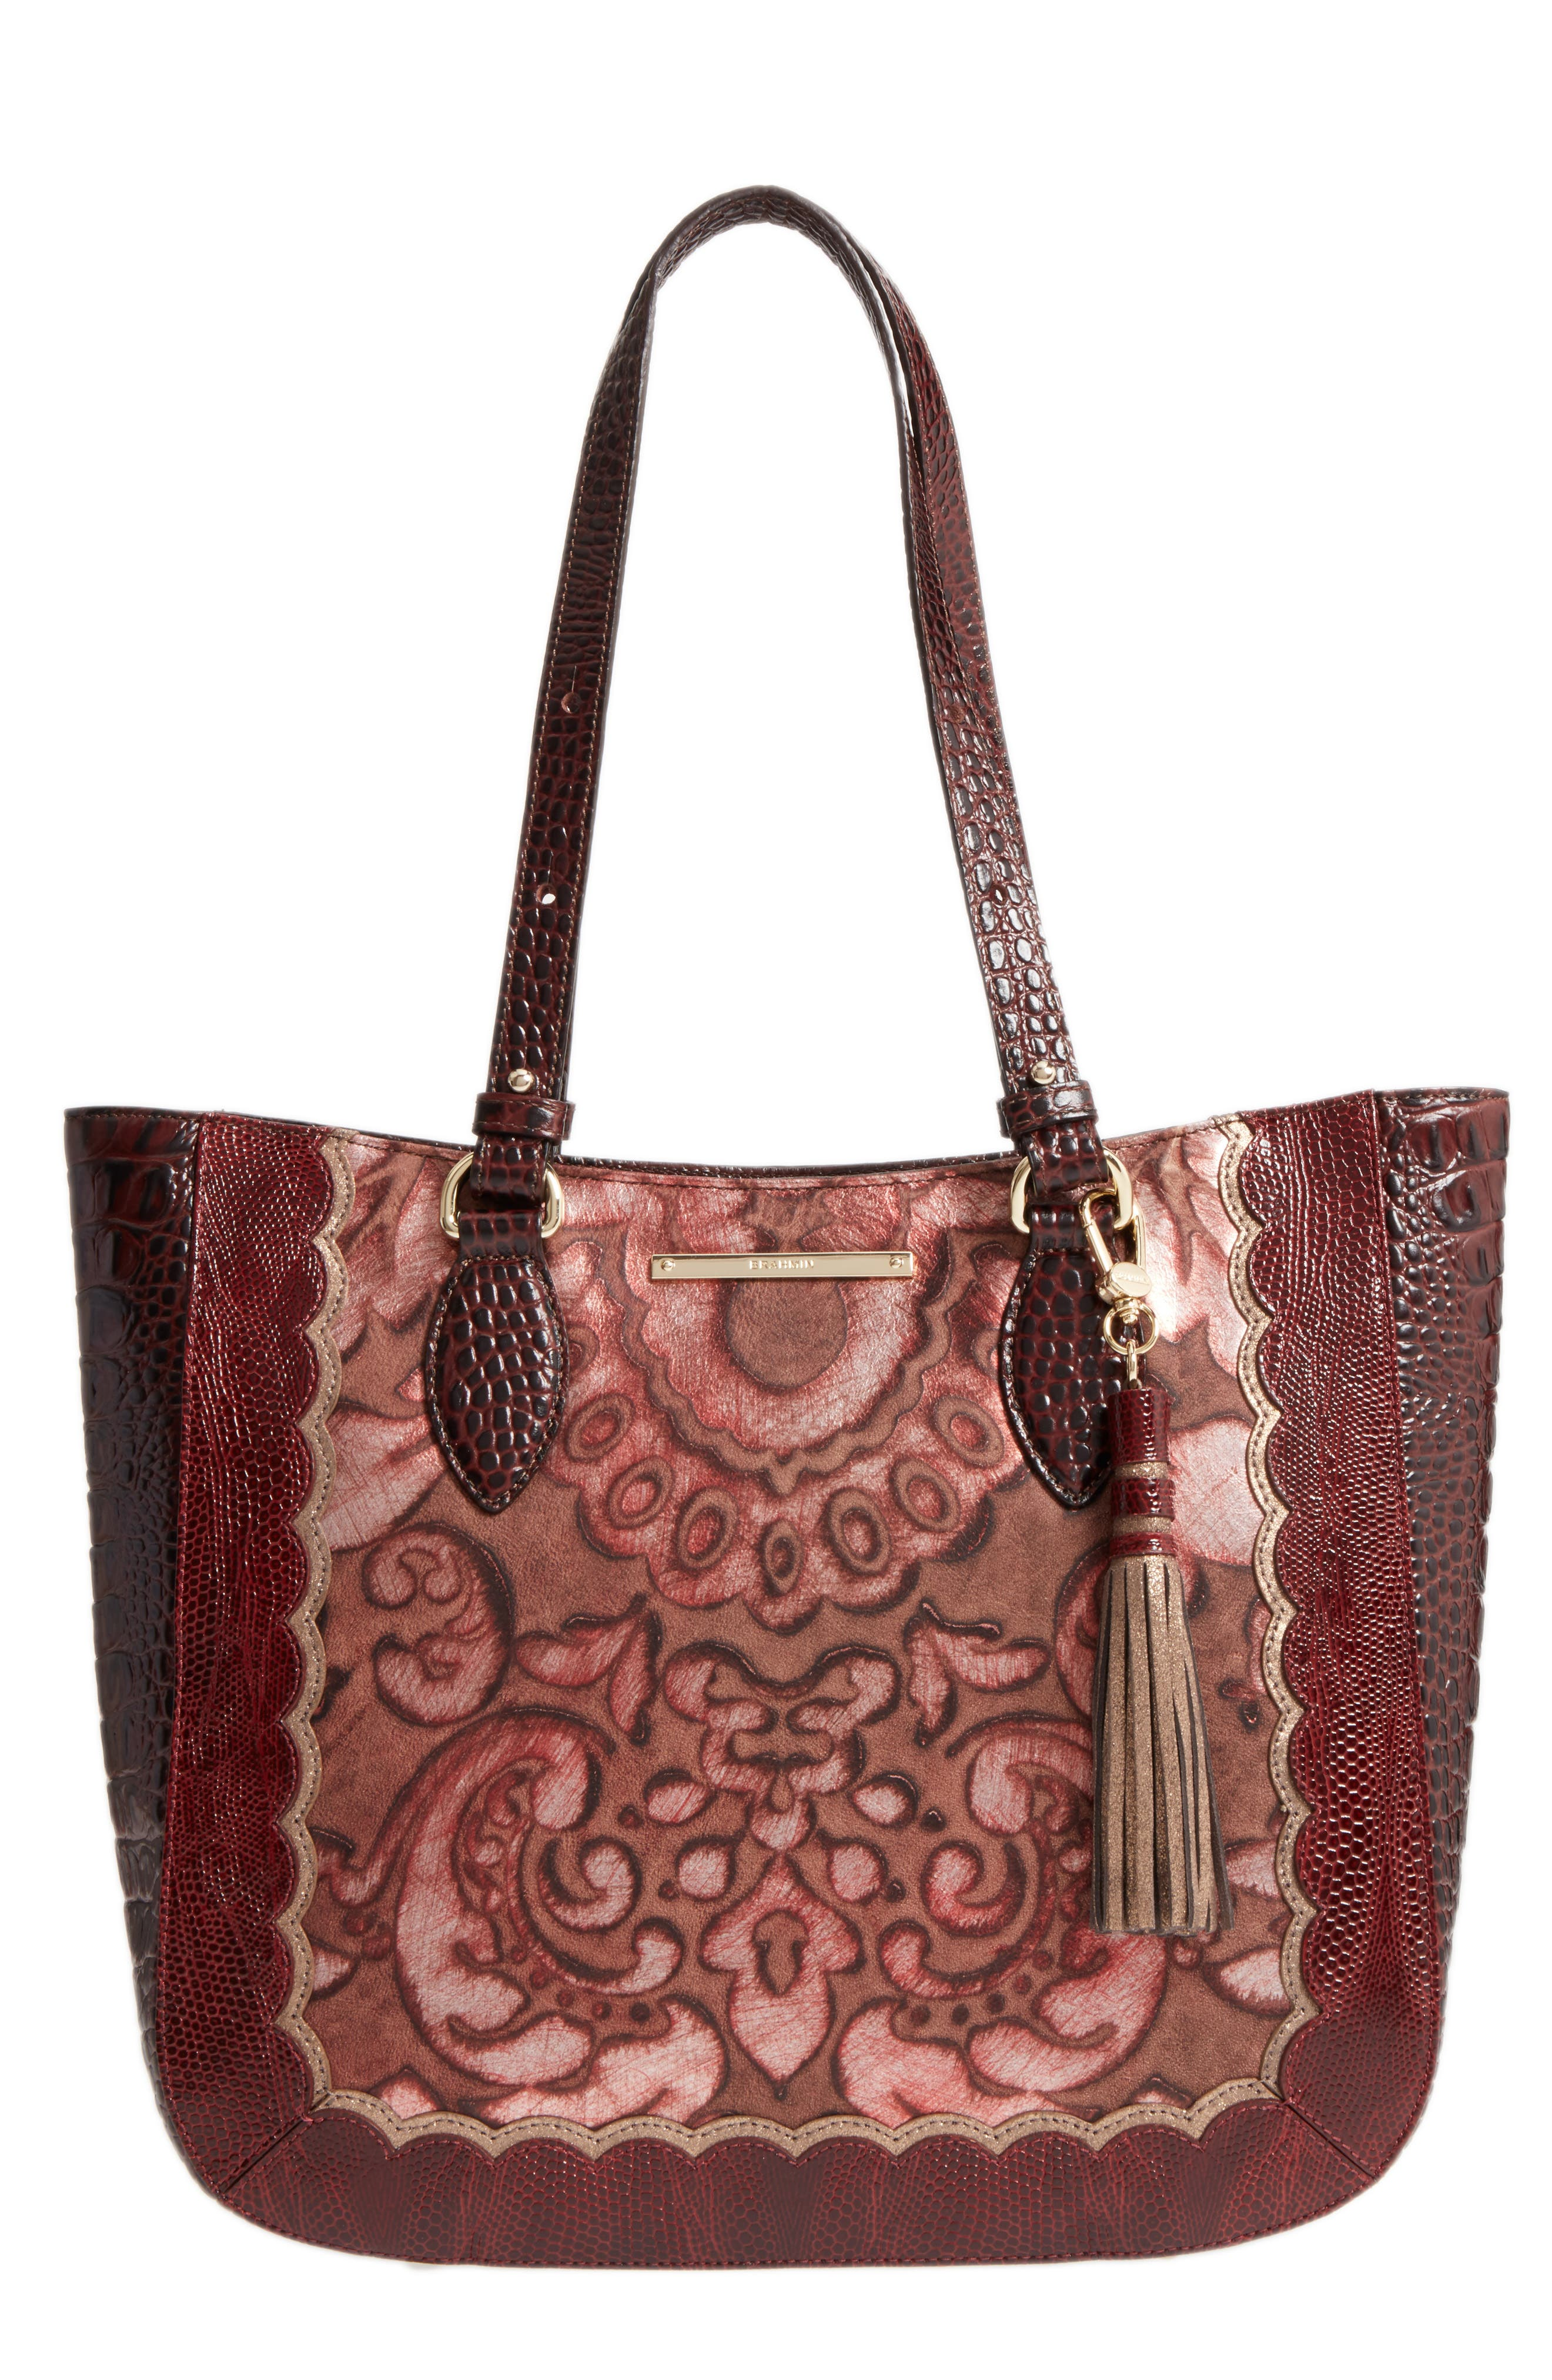 Medium Red Verona - Lena Leather Tote,                         Main,                         color, Red